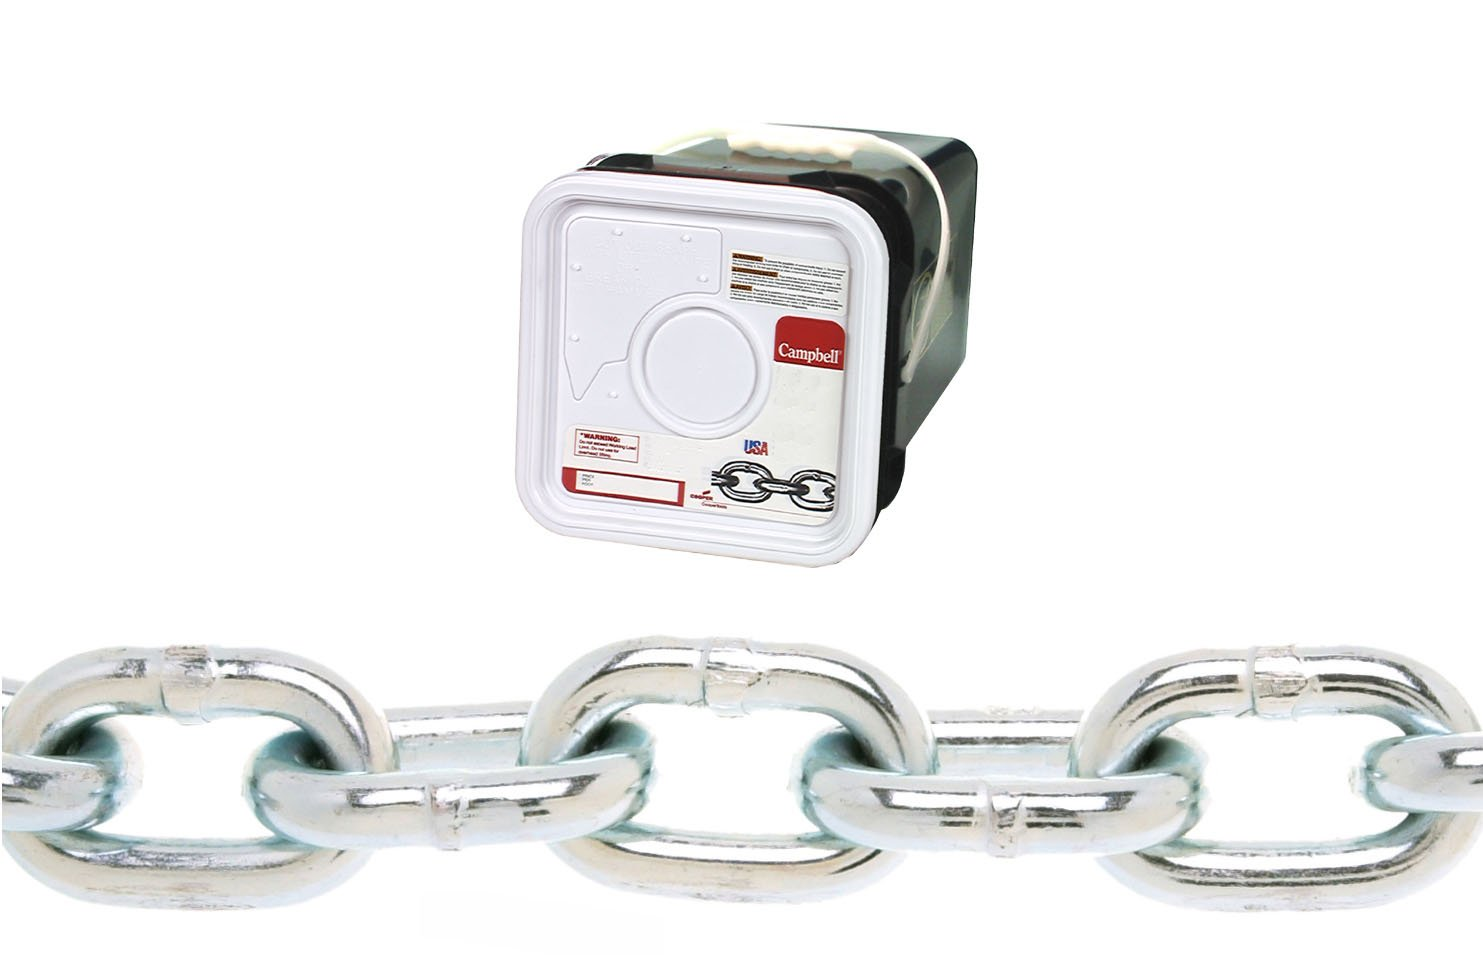 Campbell 0143626 System 3 Grade 30 Low Carbon Steel Proof Coil Chain in Square Pail, Zinc Plated, 3/8'' Trade, 0.37'' Diameter, 45' Length, 2650 lbs Load Capacity